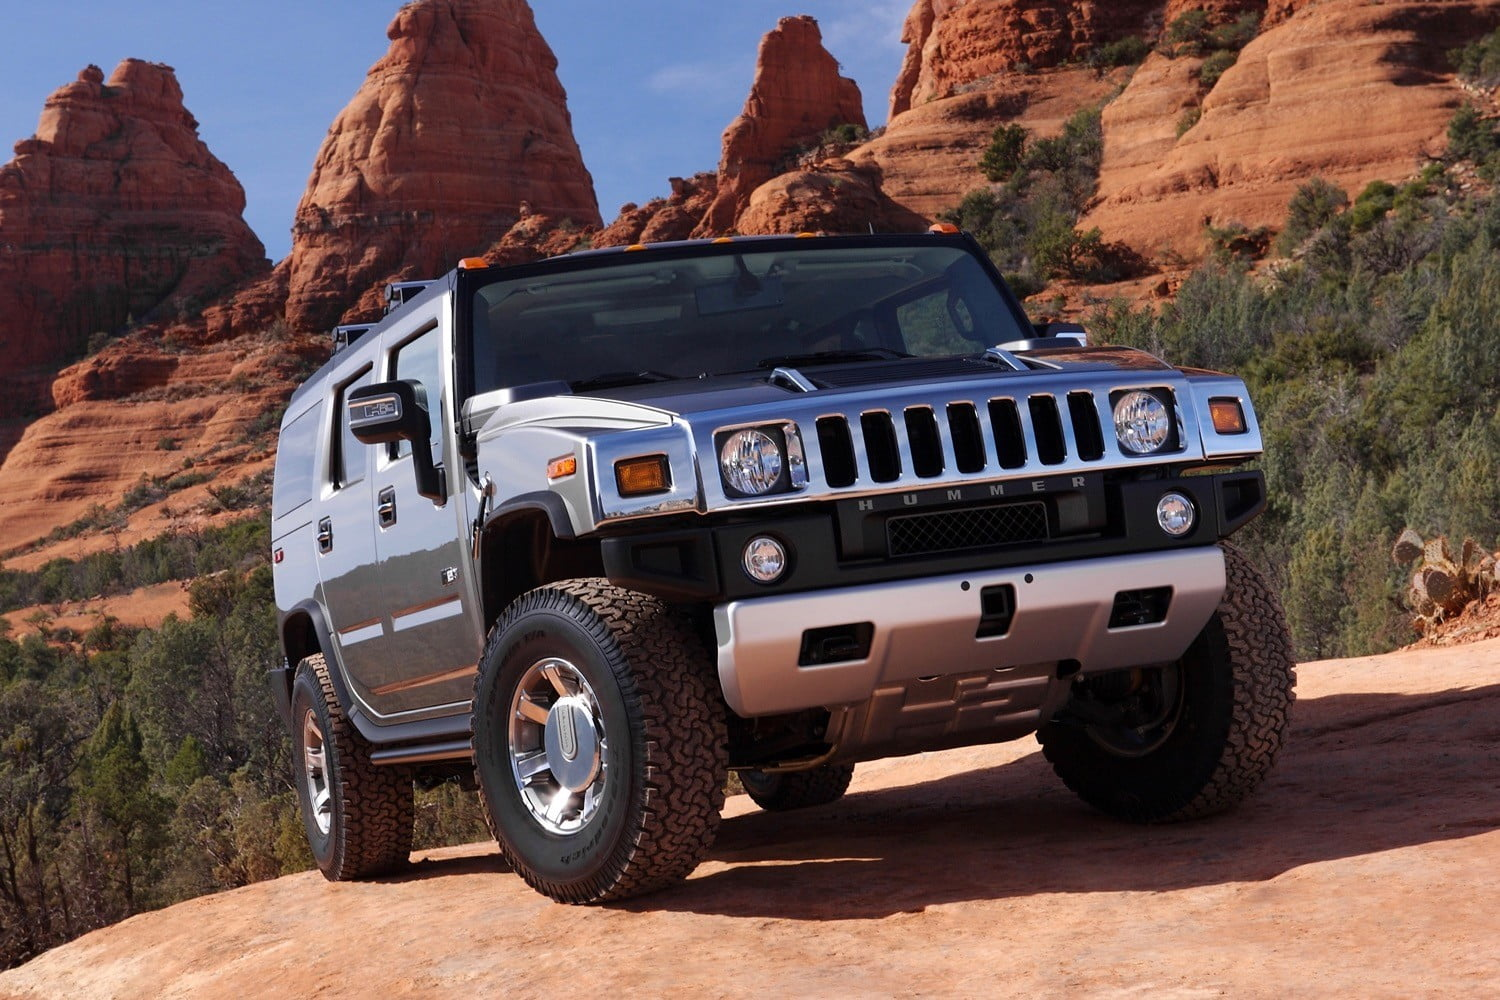 GM's Hummer brand could make an unlikely return with electric power